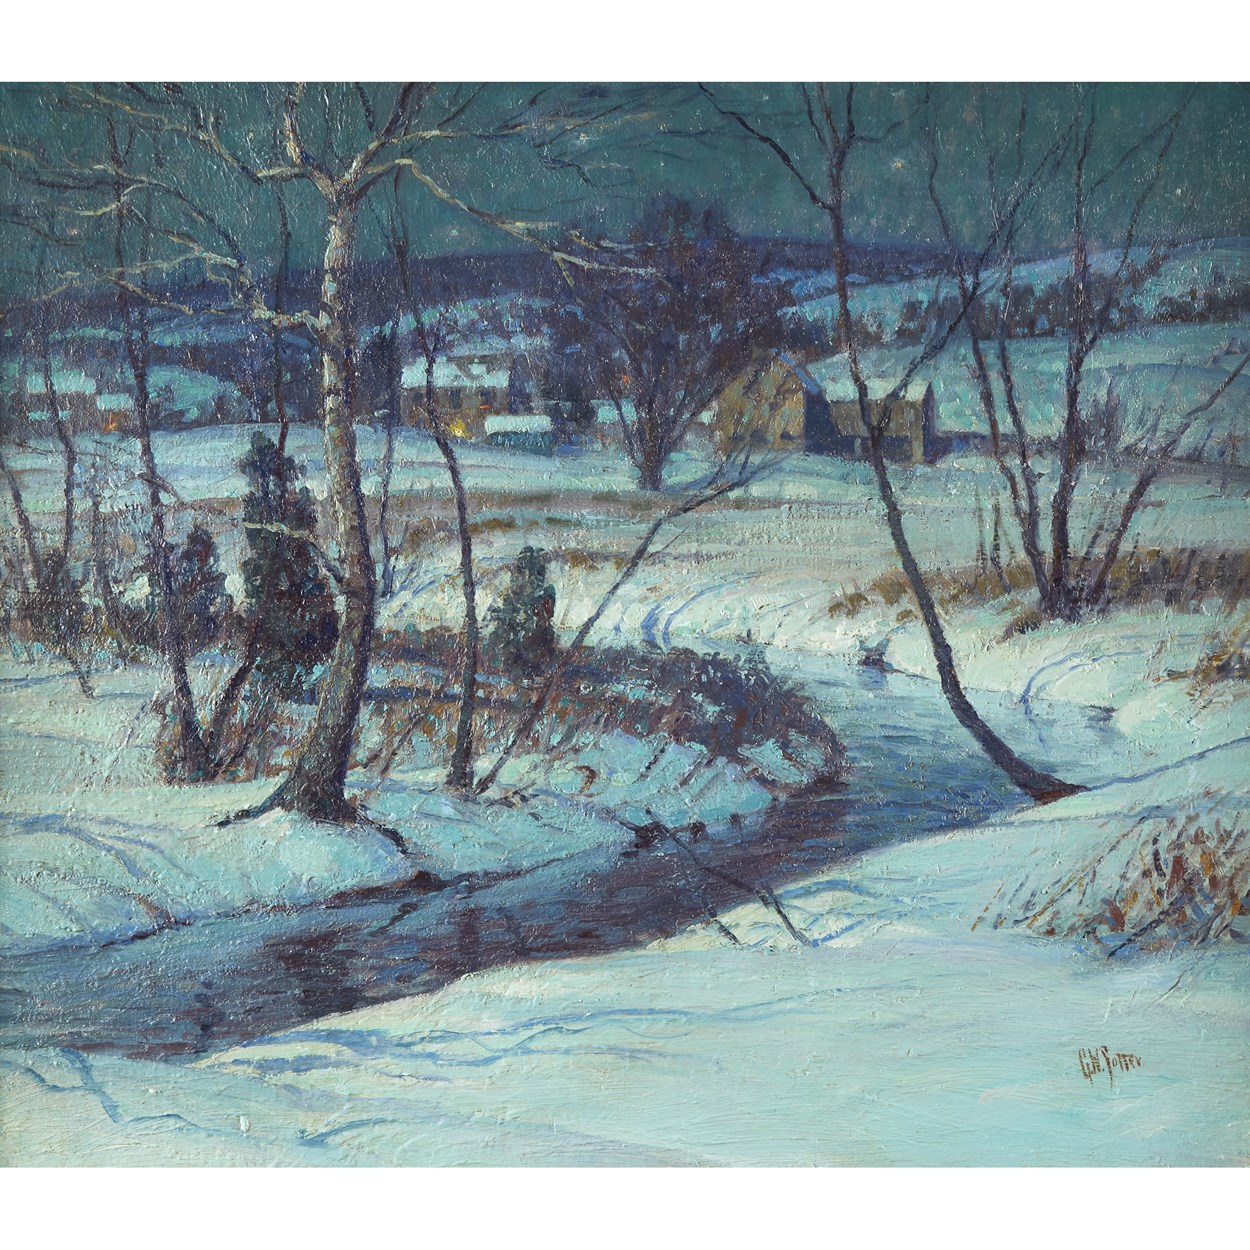 Lot 41 - George William Sotter (American, 1879-1953)